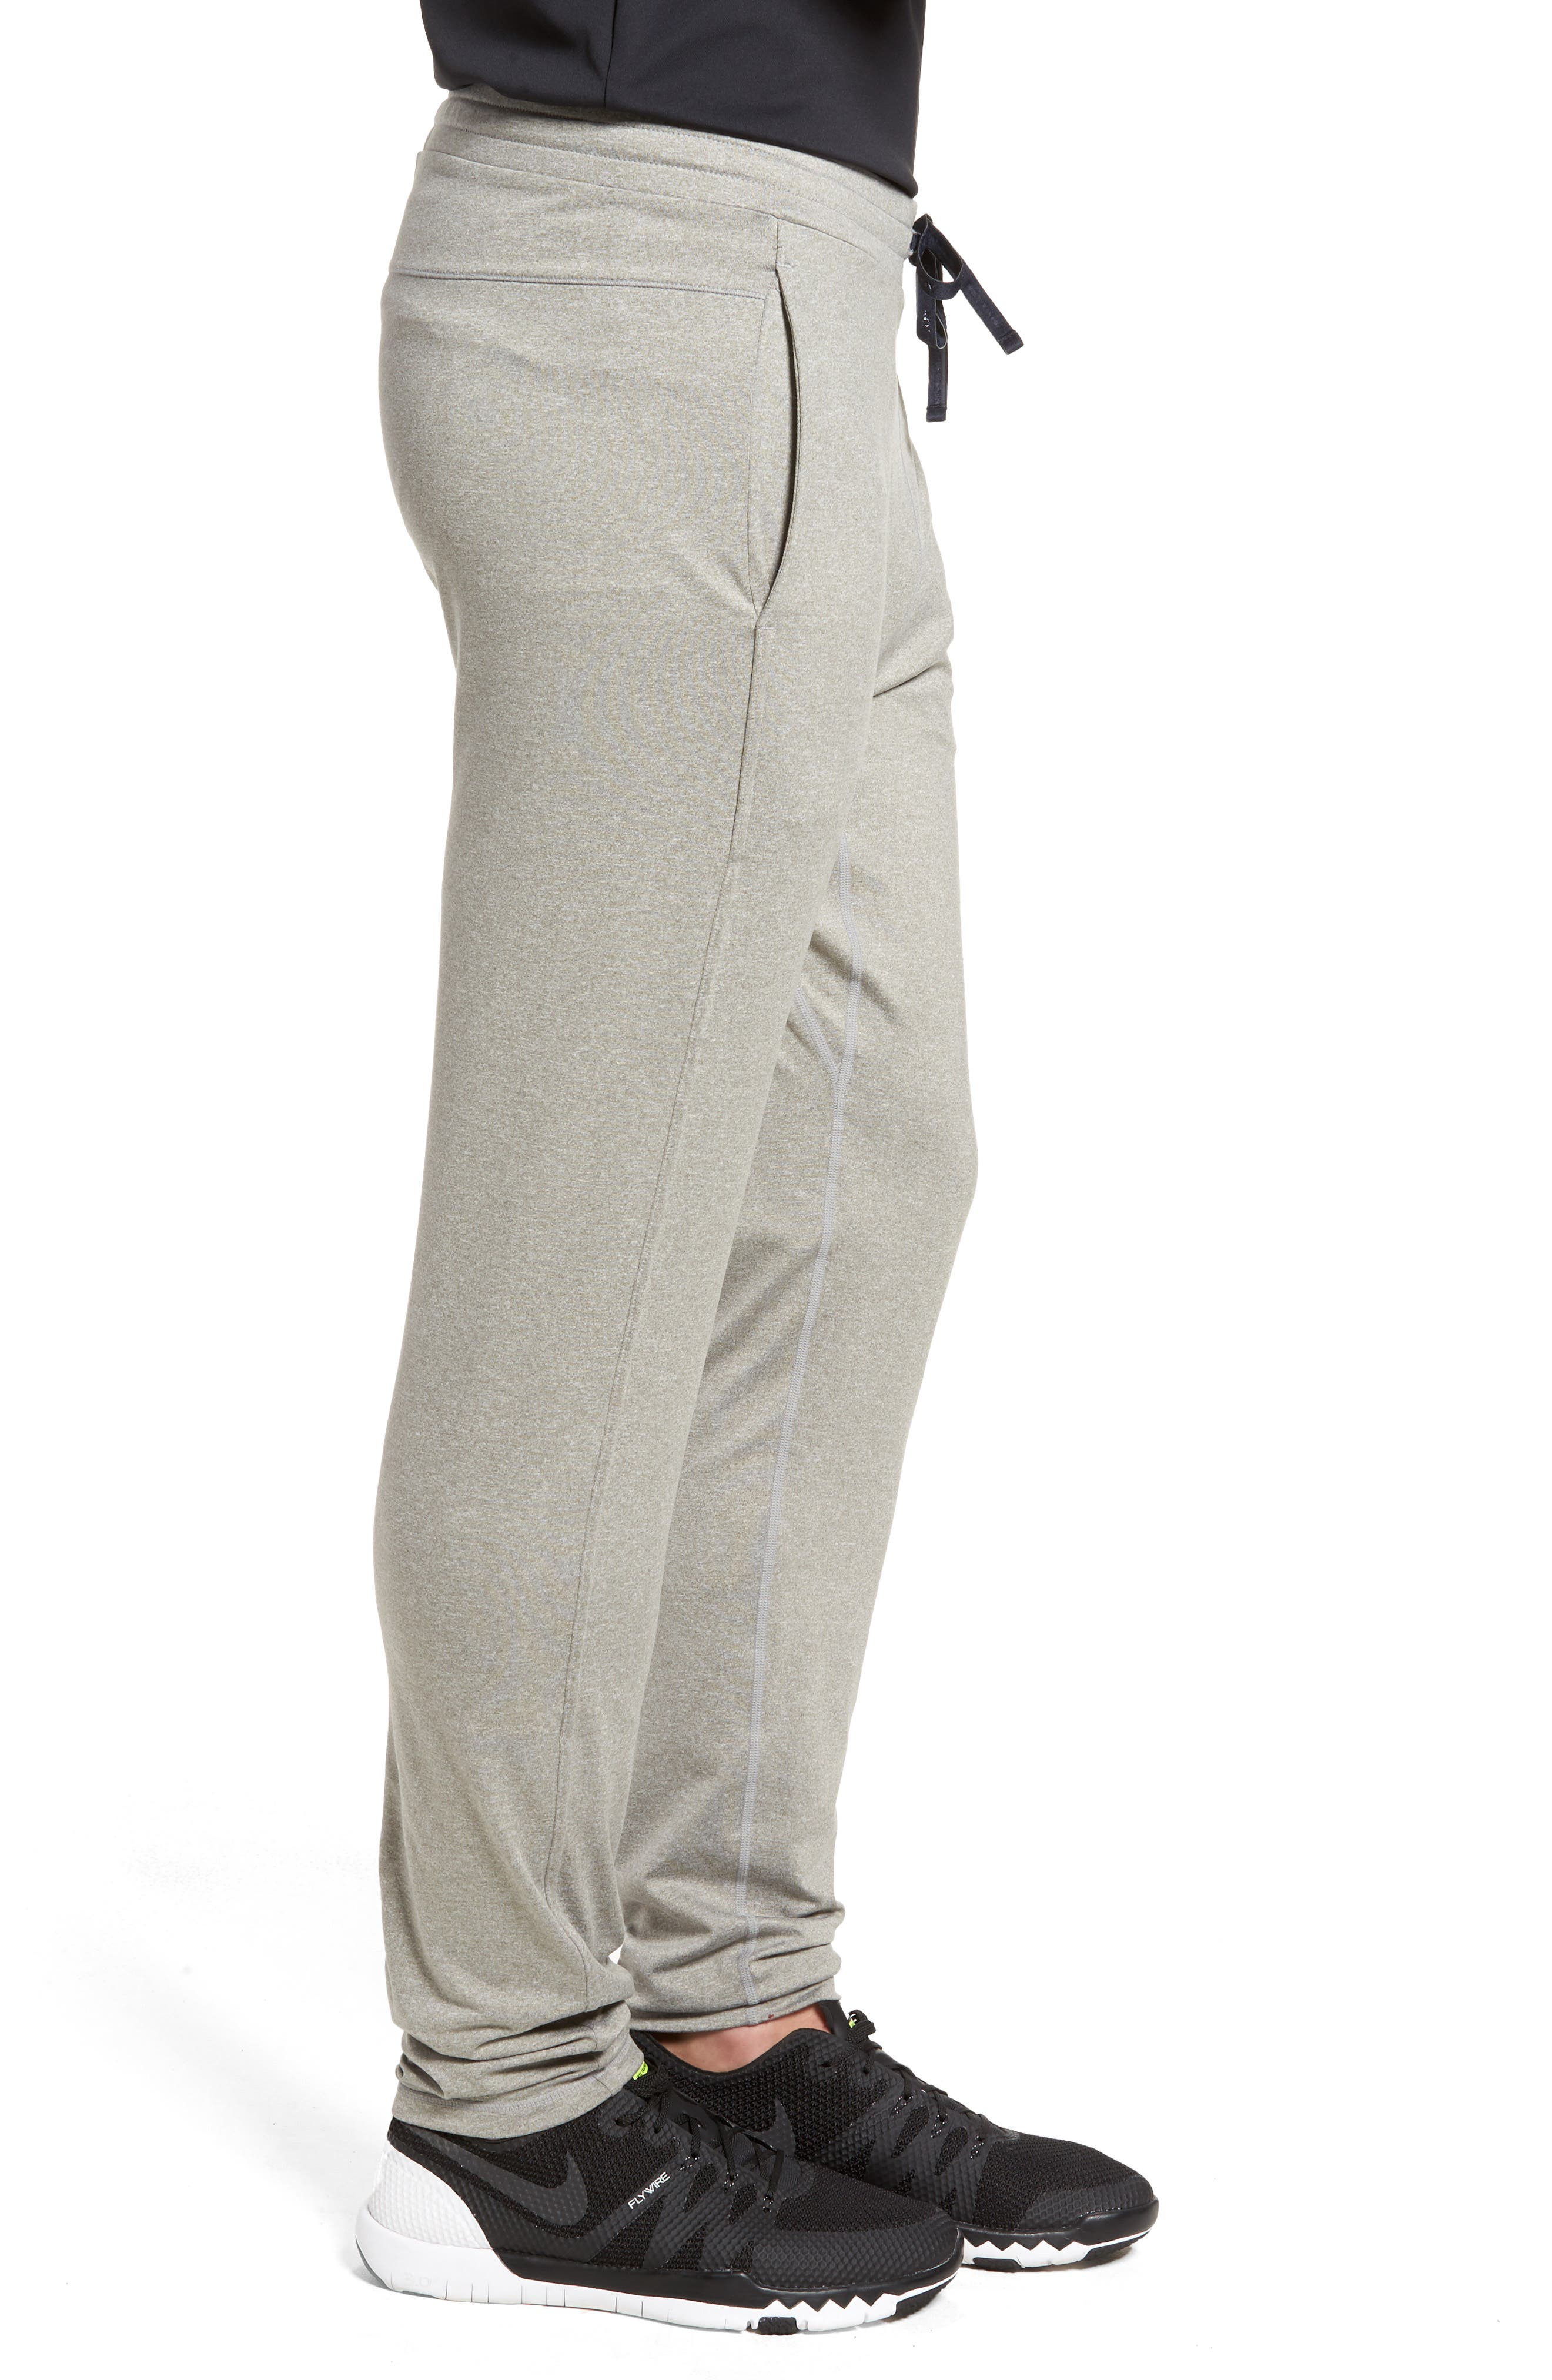 Alternate Image 3  - Beachbody Go-To Slim Athletic Pants